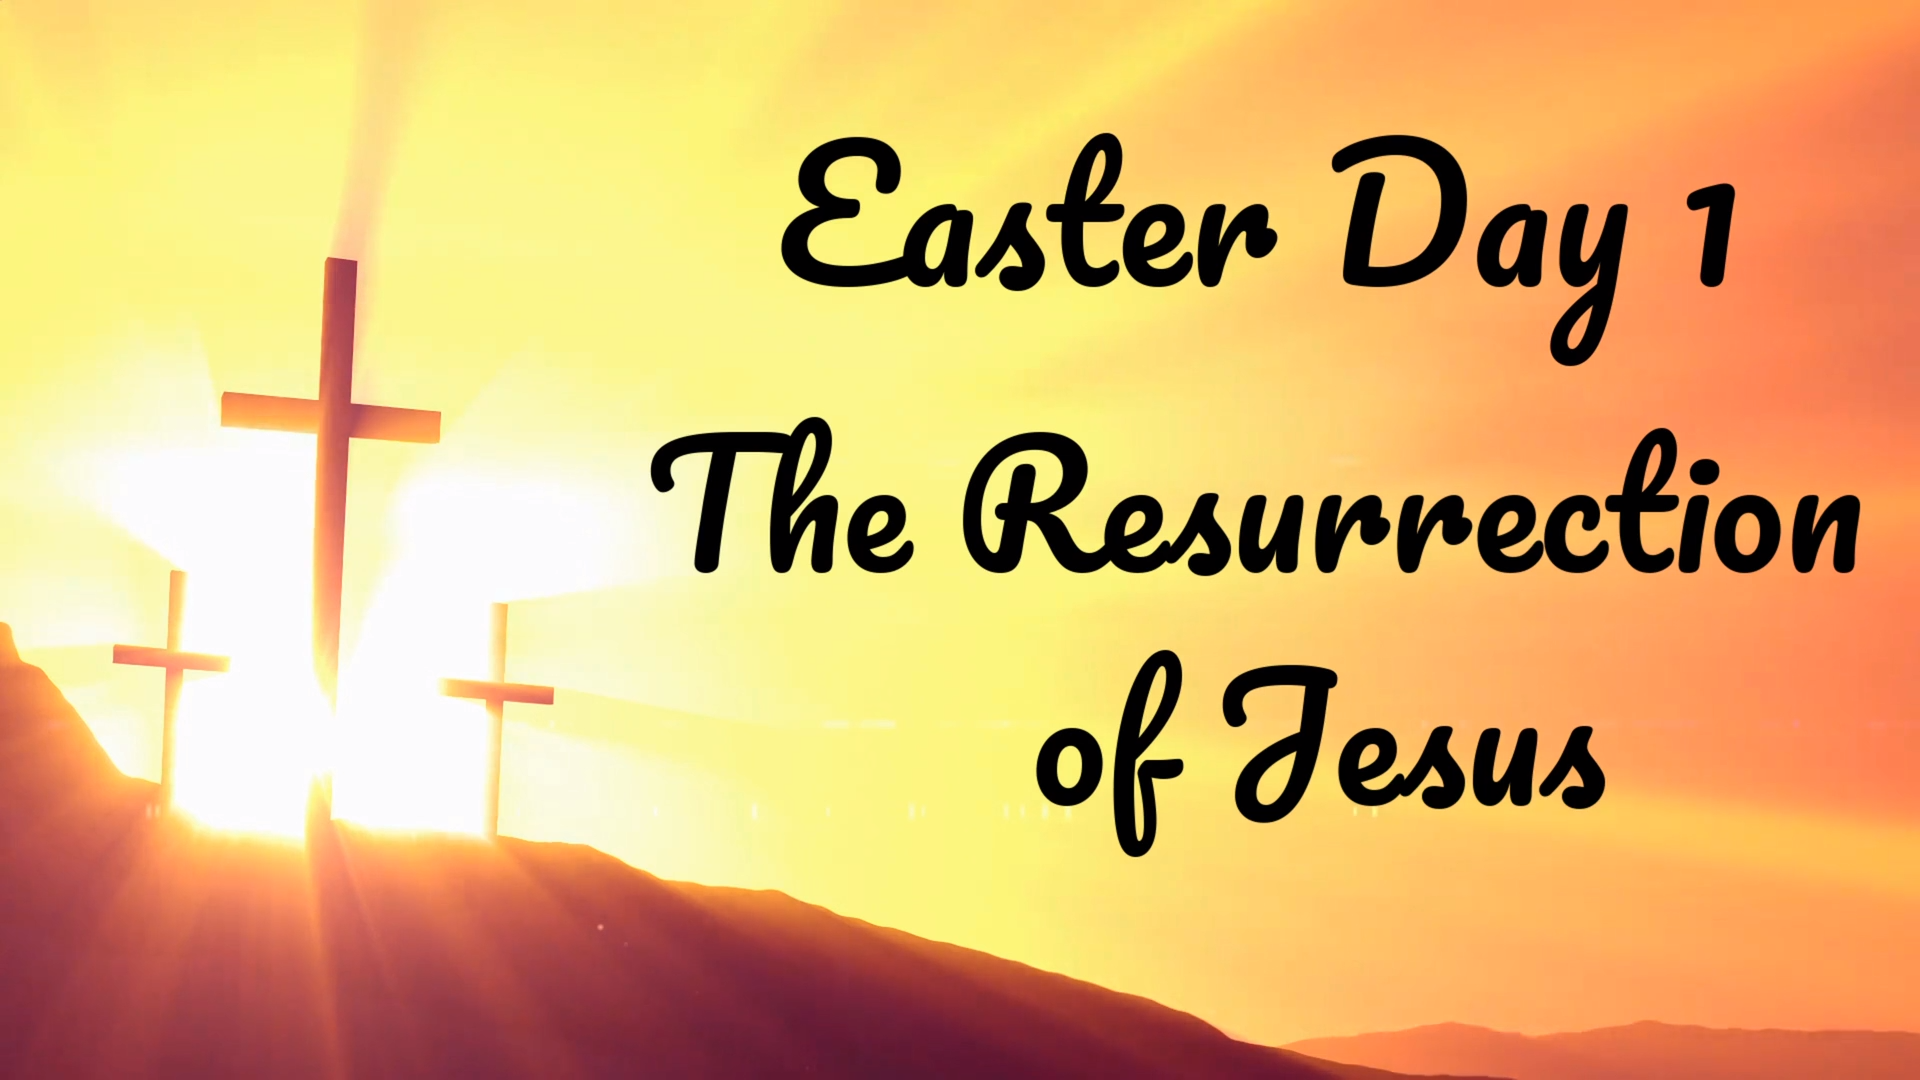 Easter 01 - The Resurrection of Jesus